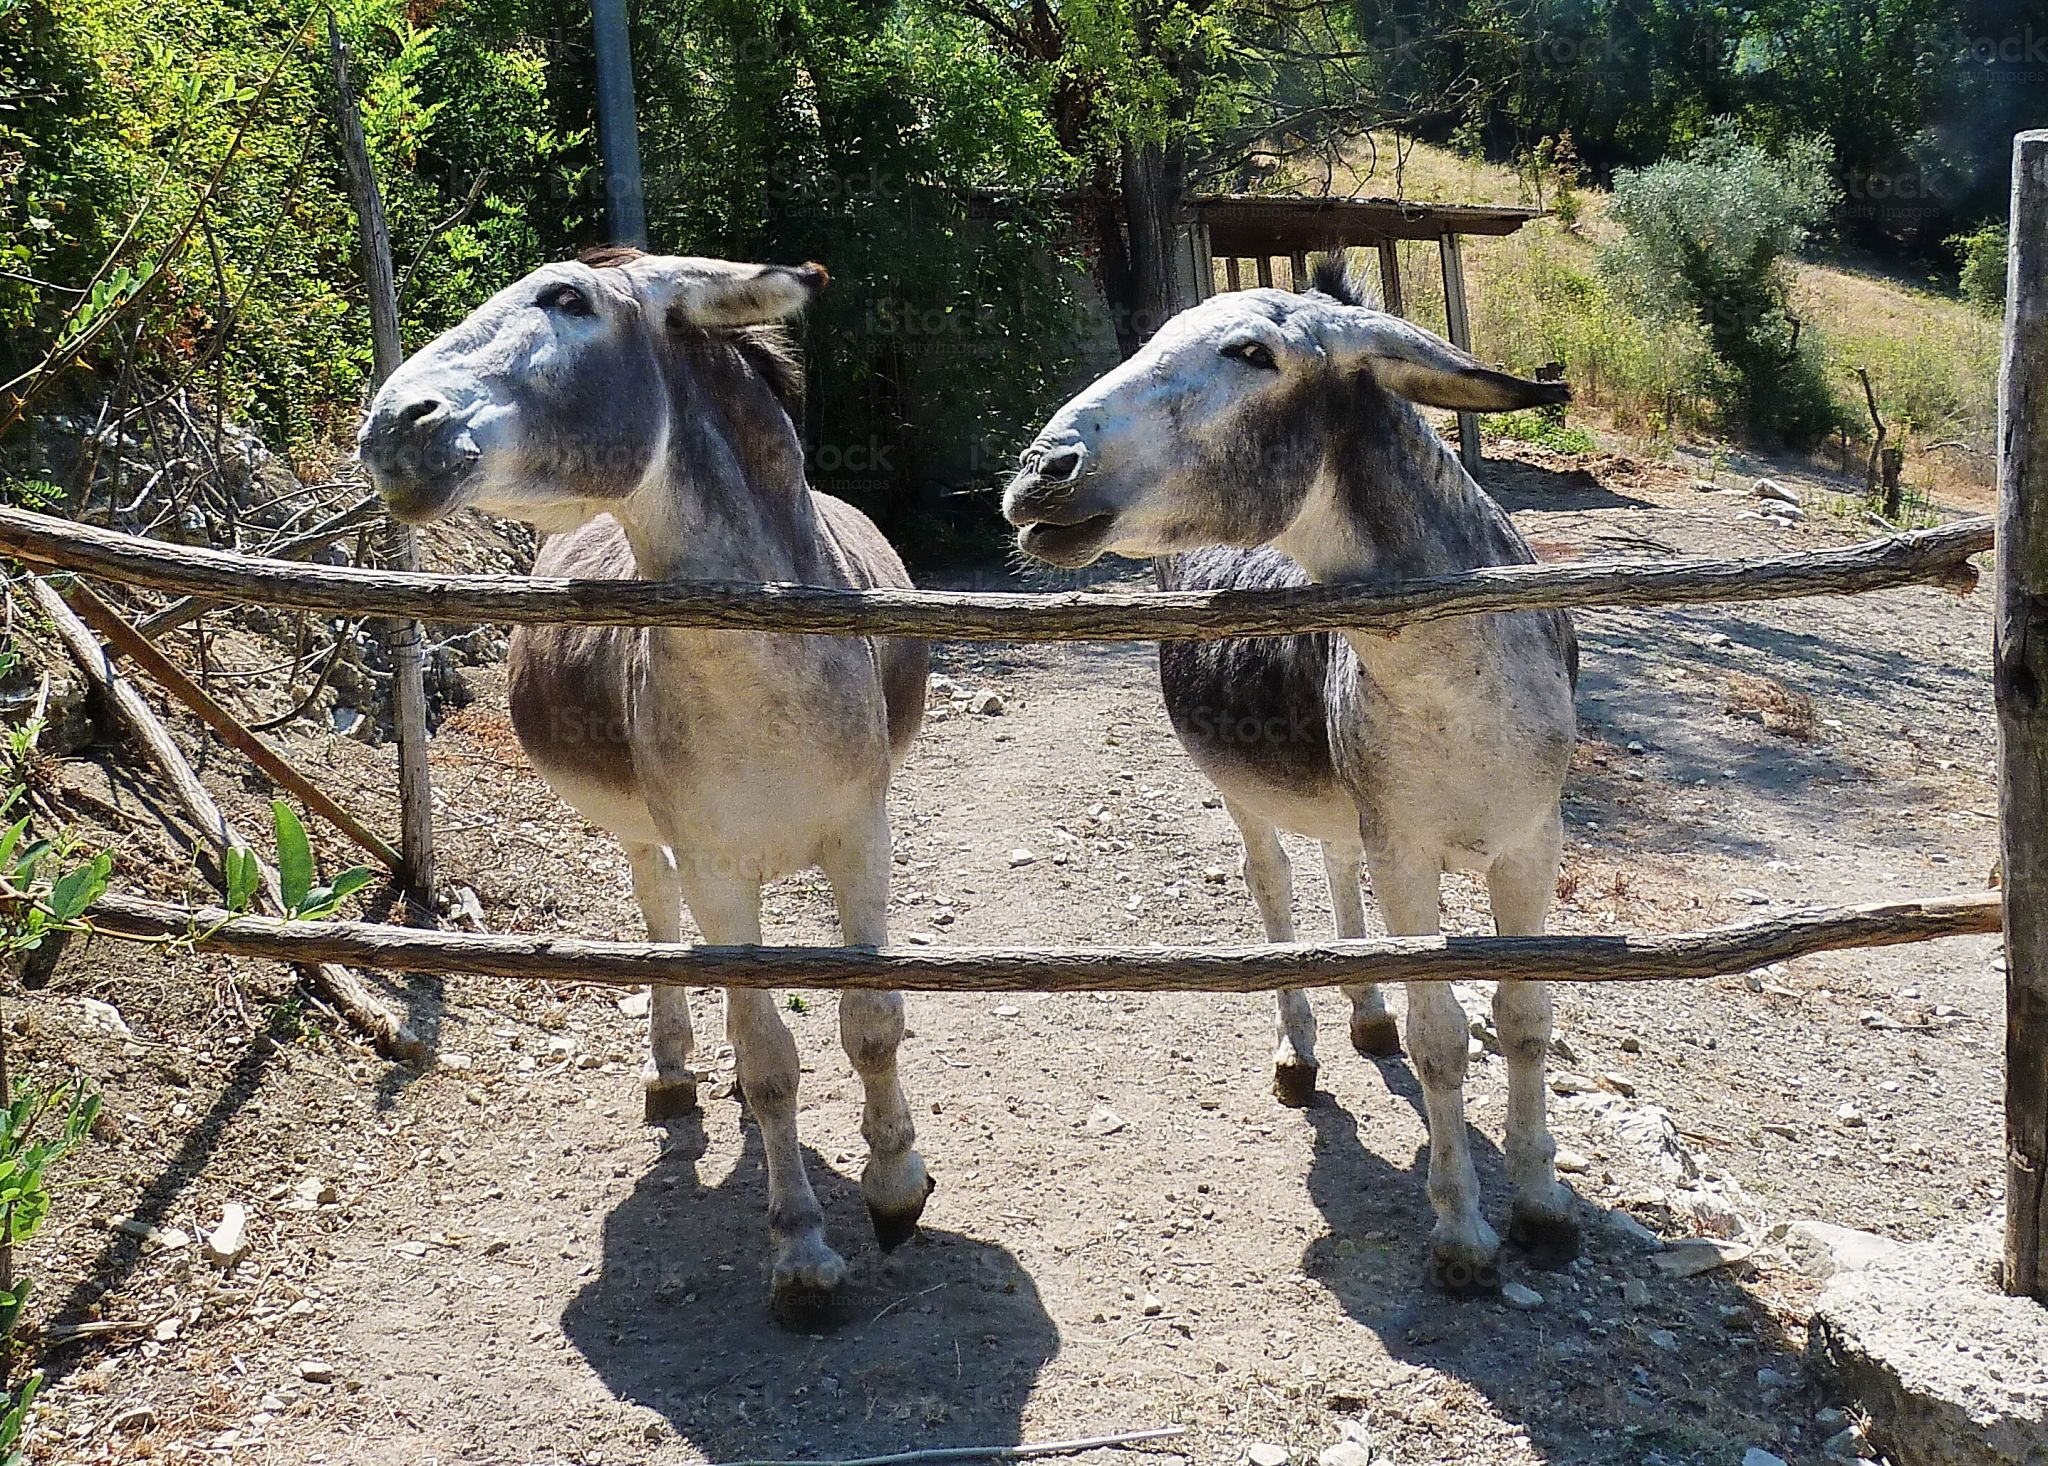 https://secure.istockphoto.com/photo/pair-of-donkeys-in-the-tuscan-countryside-gm511723768-86780415